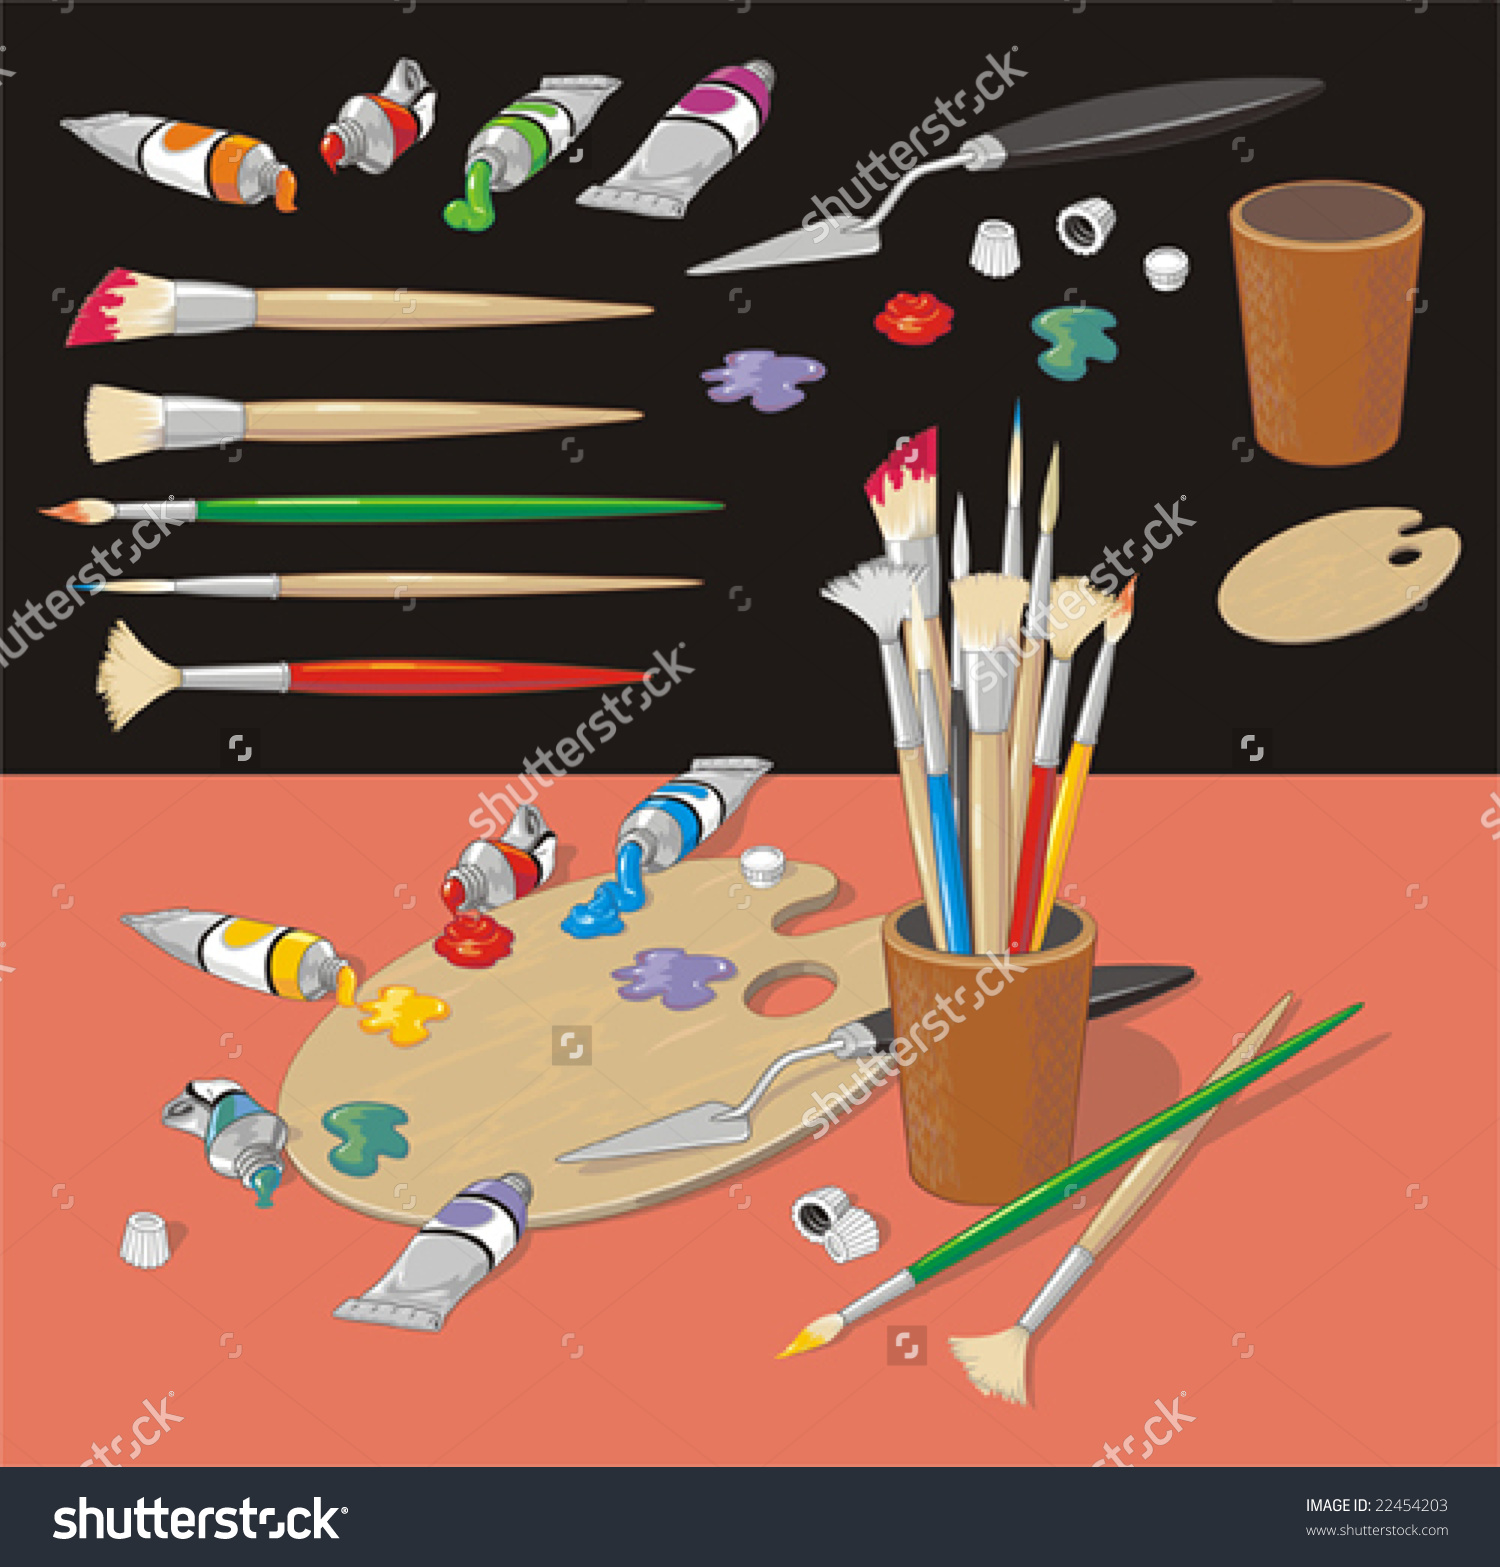 Colorful Clip Art Collection With Brushes, Ink Blots, Palette, Ink.